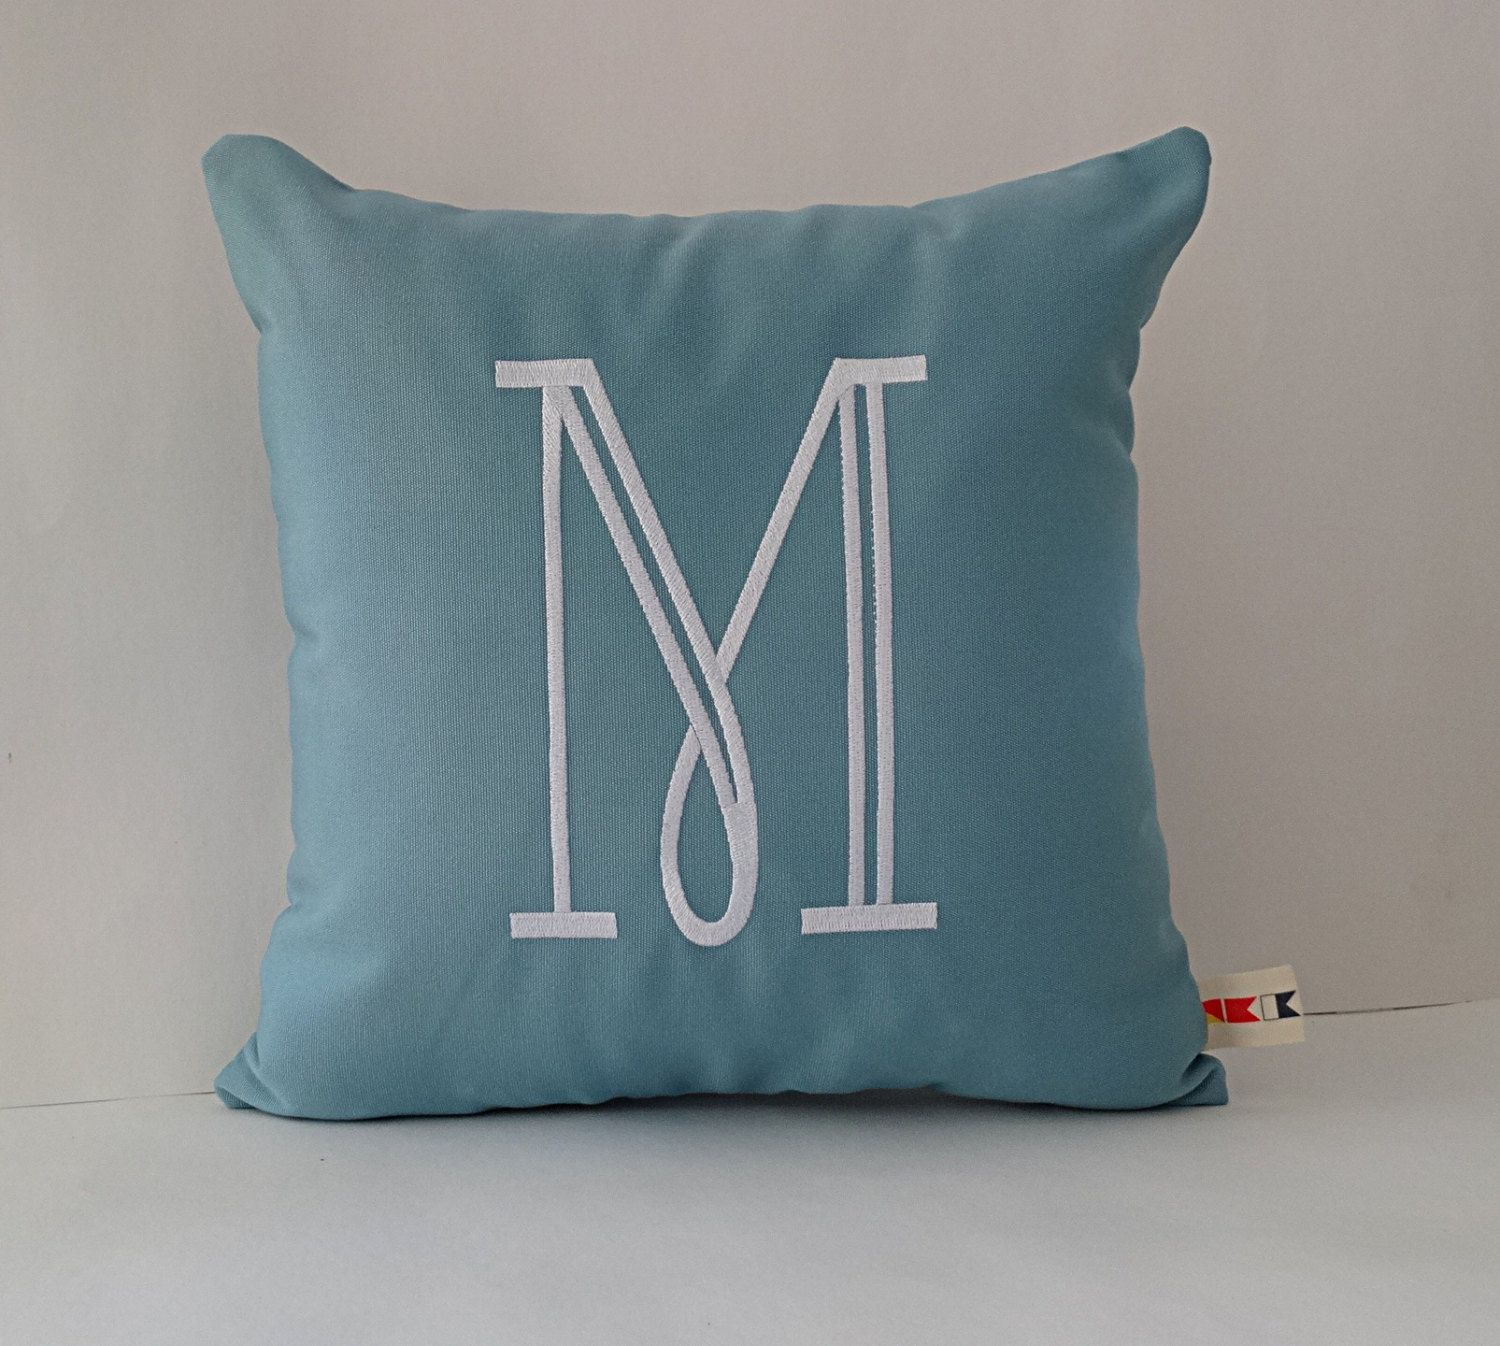 Initial Pillow Covers Sunbrella Inital Indooroutdoor Pillow Cover Initial Pillow Cover